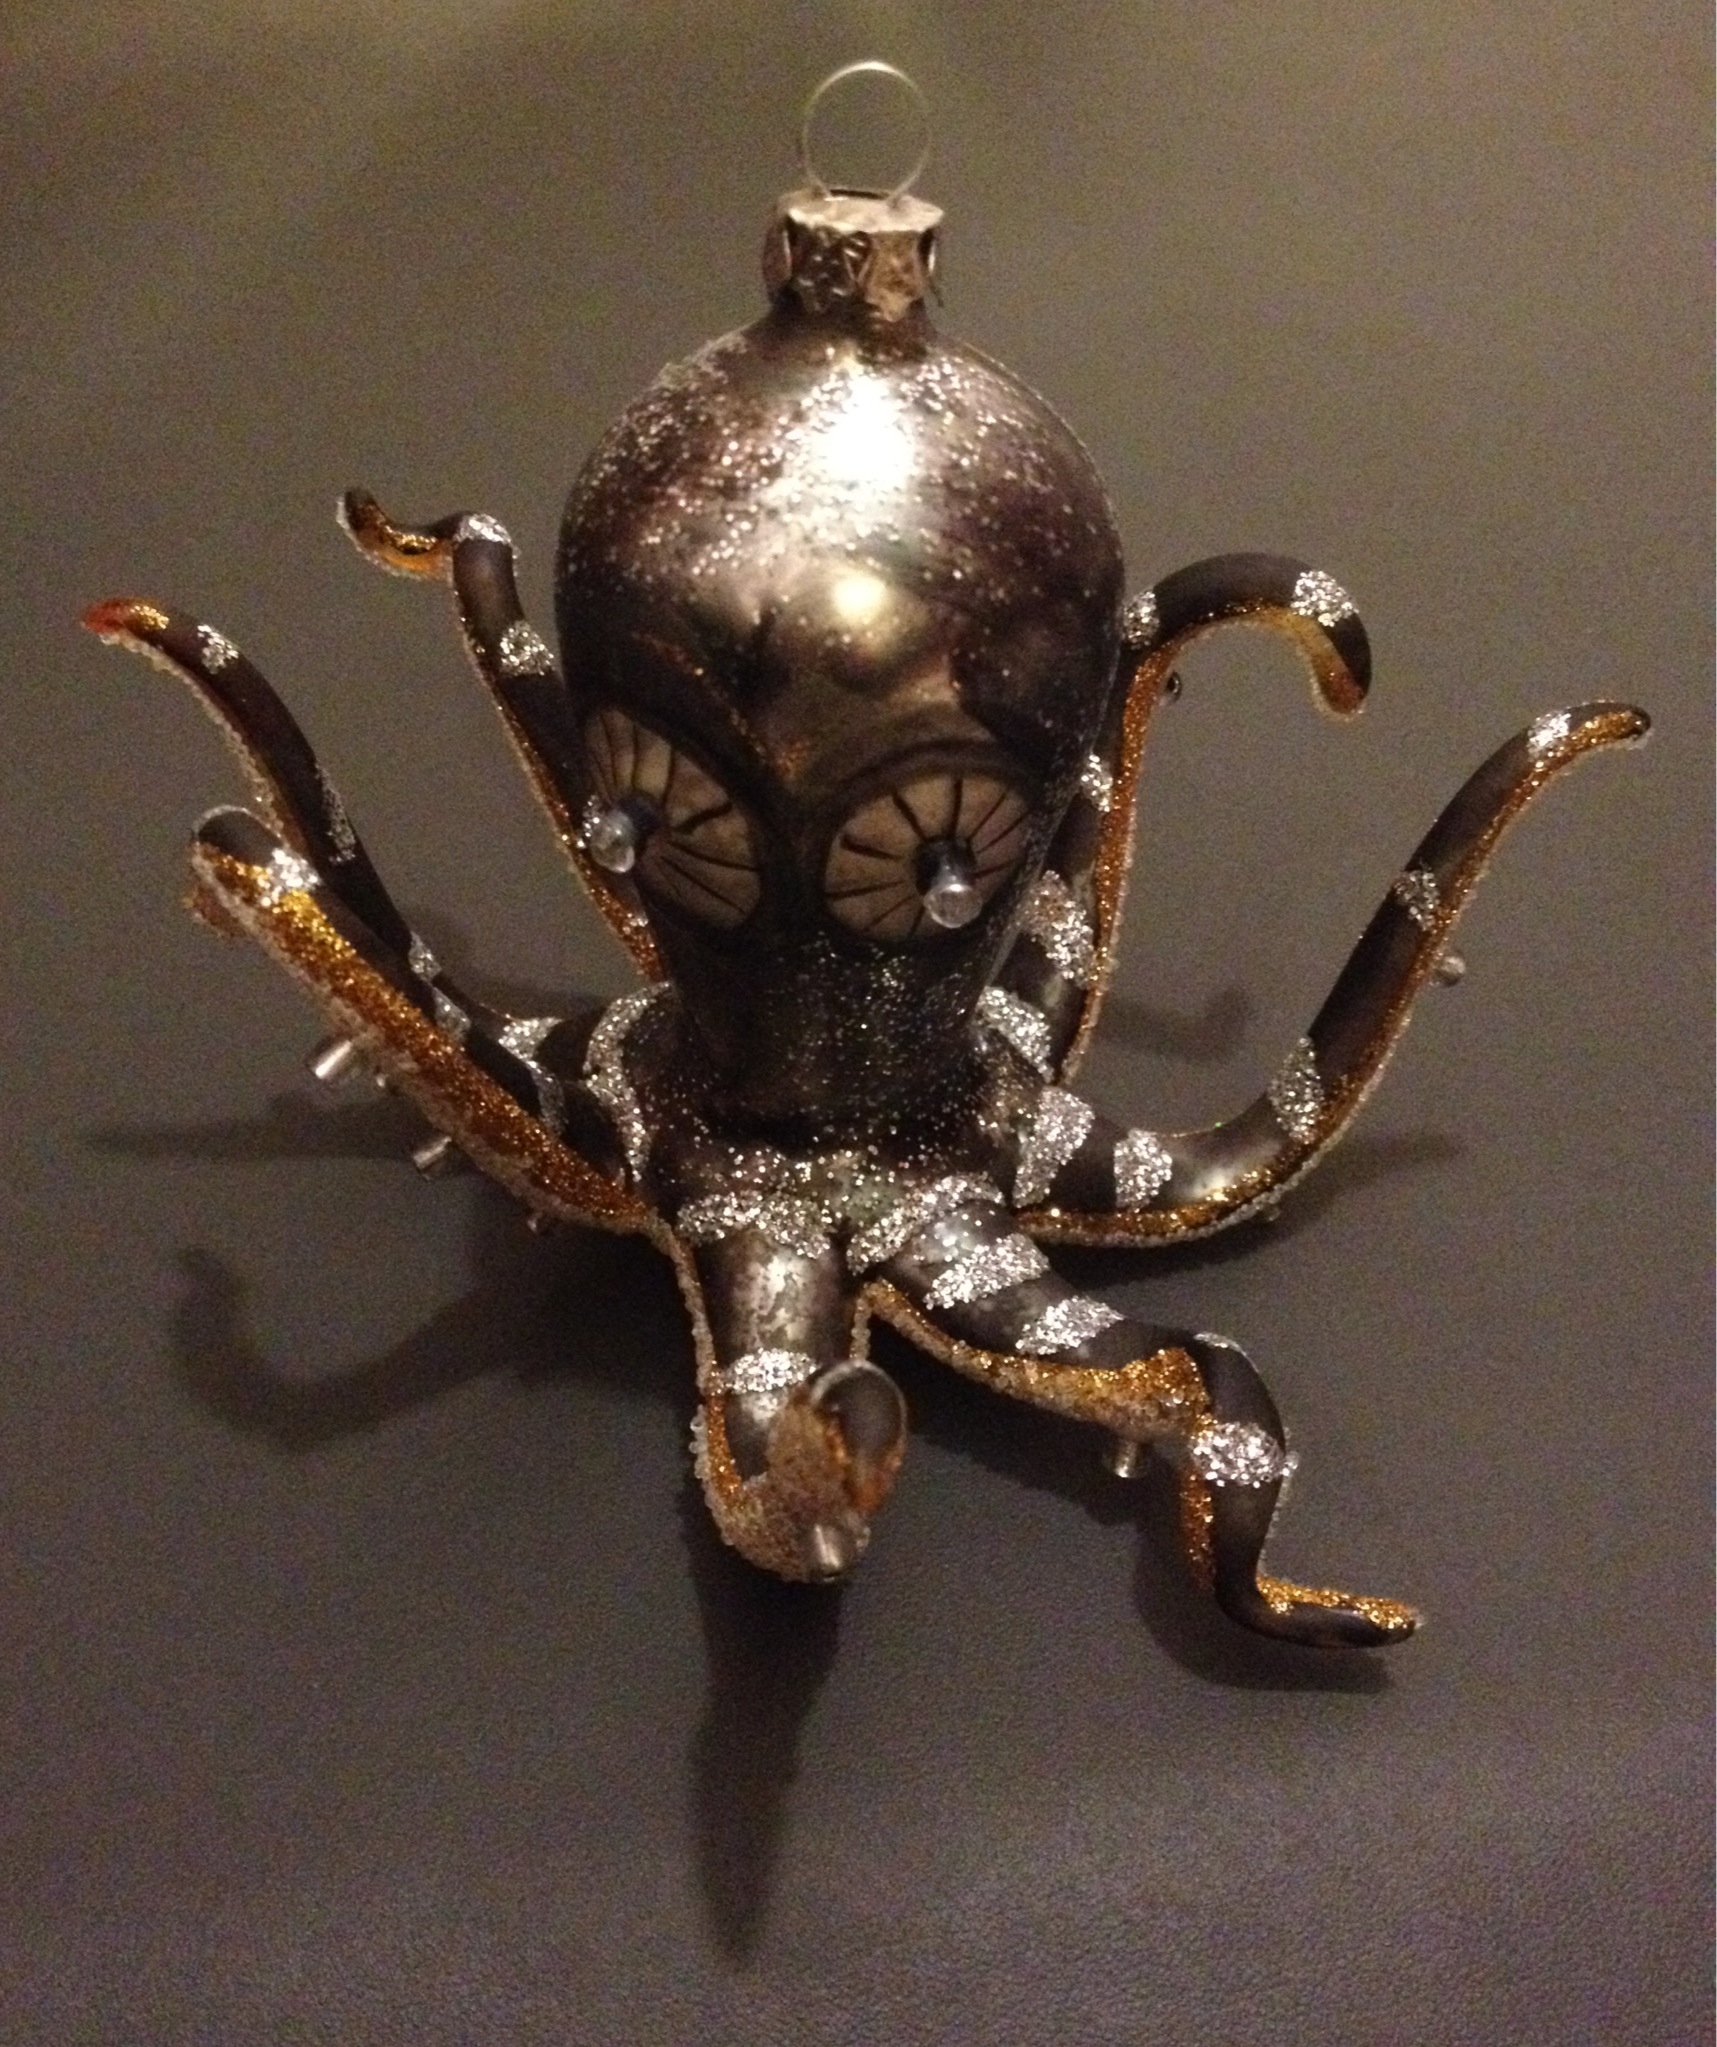 Octopus Steampunk Decoration